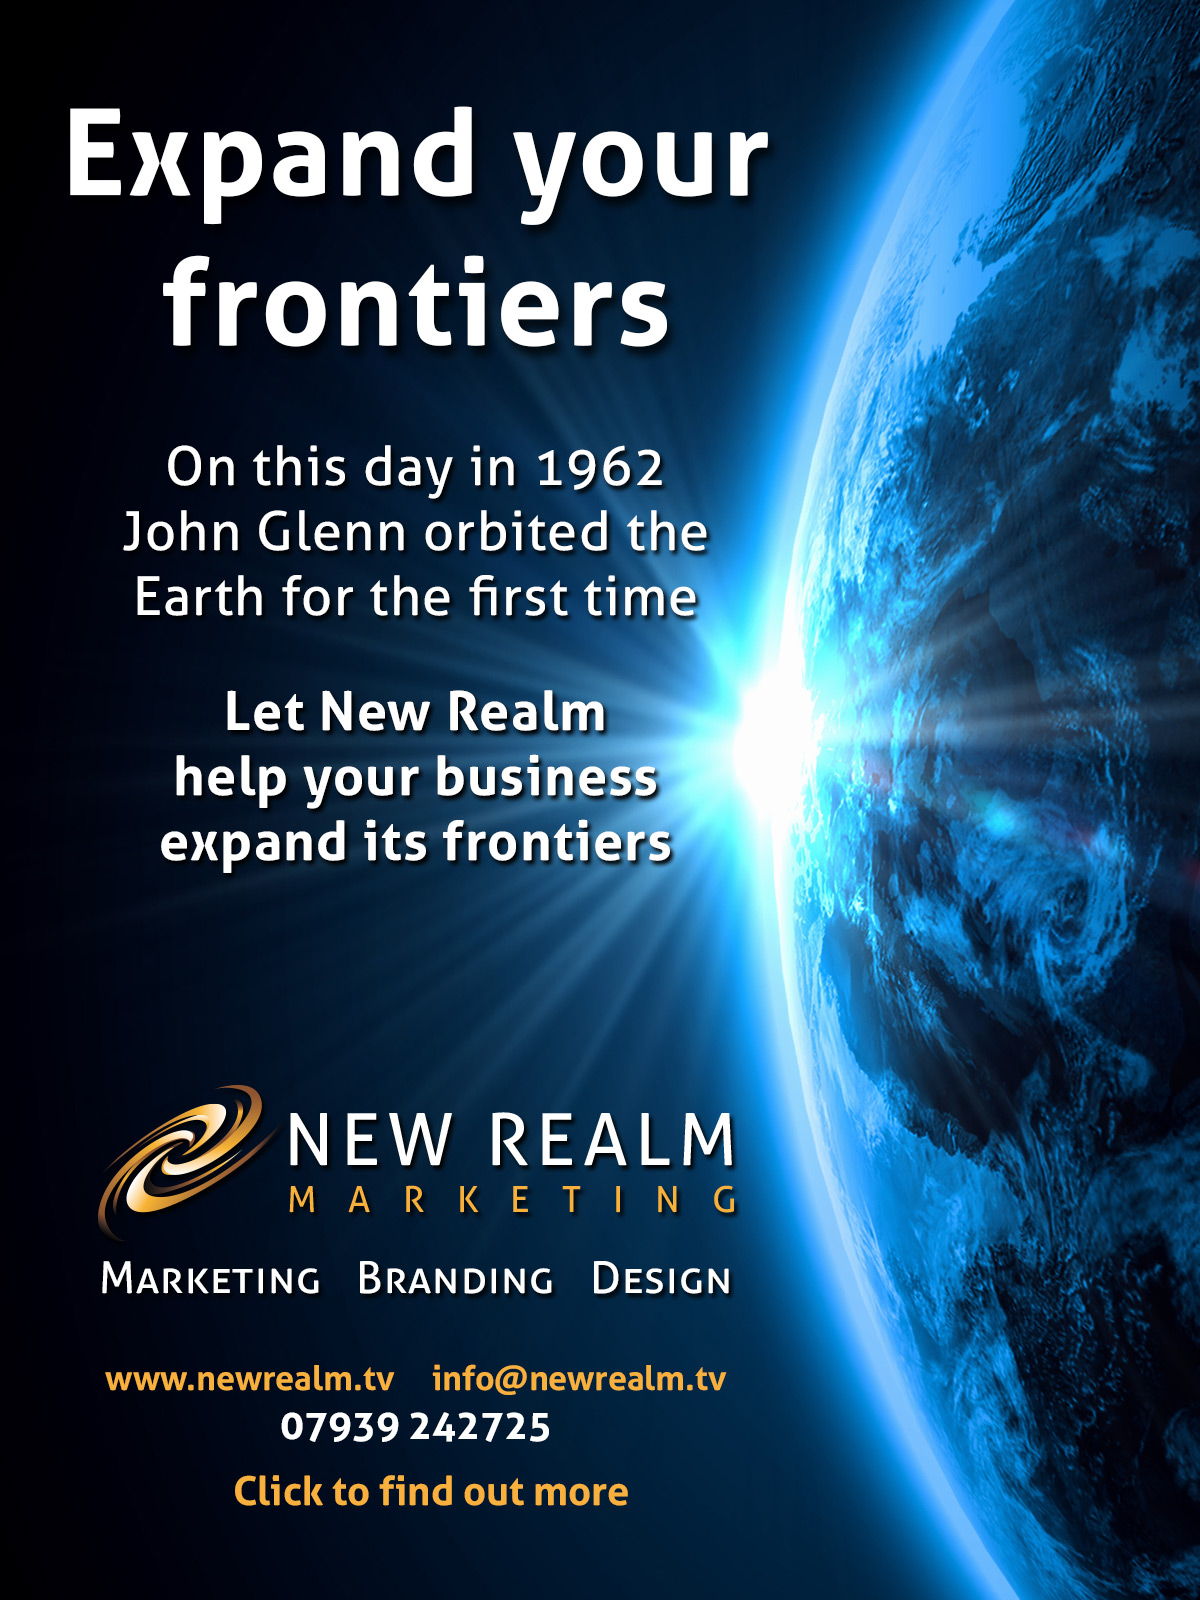 New Realm Frontiers advert